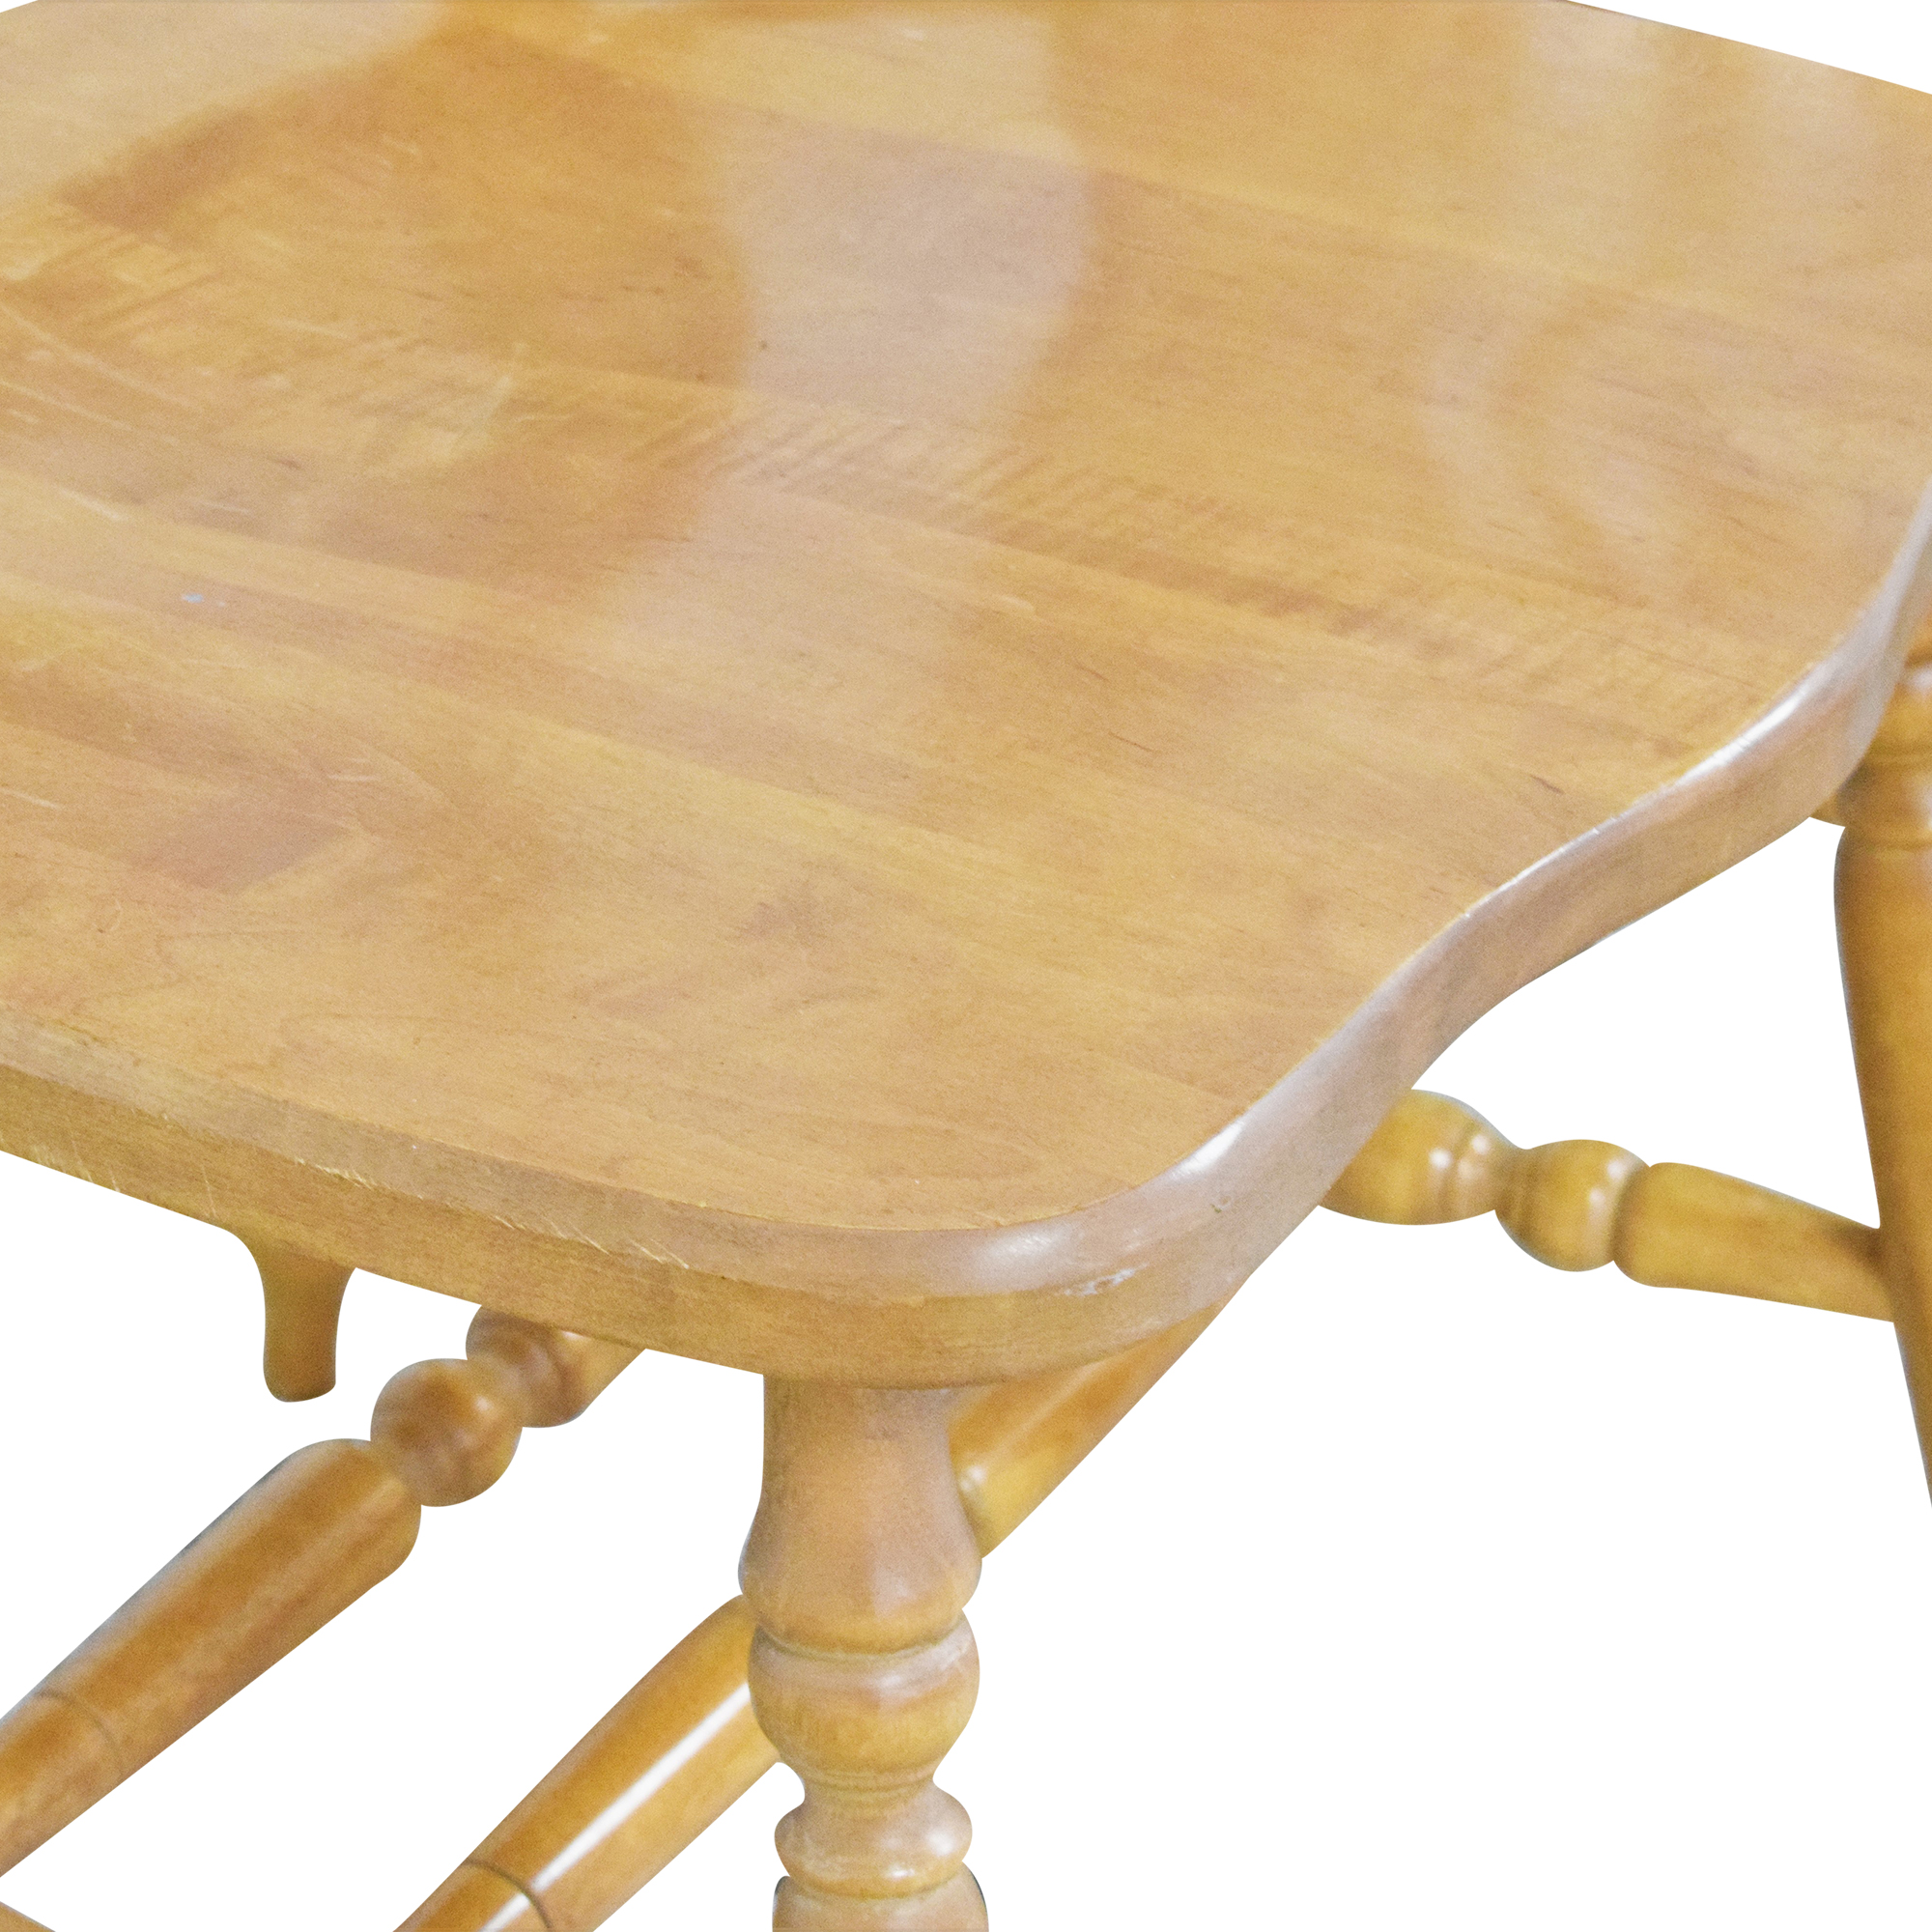 Canadel Rustic Dining Chairs / Chairs